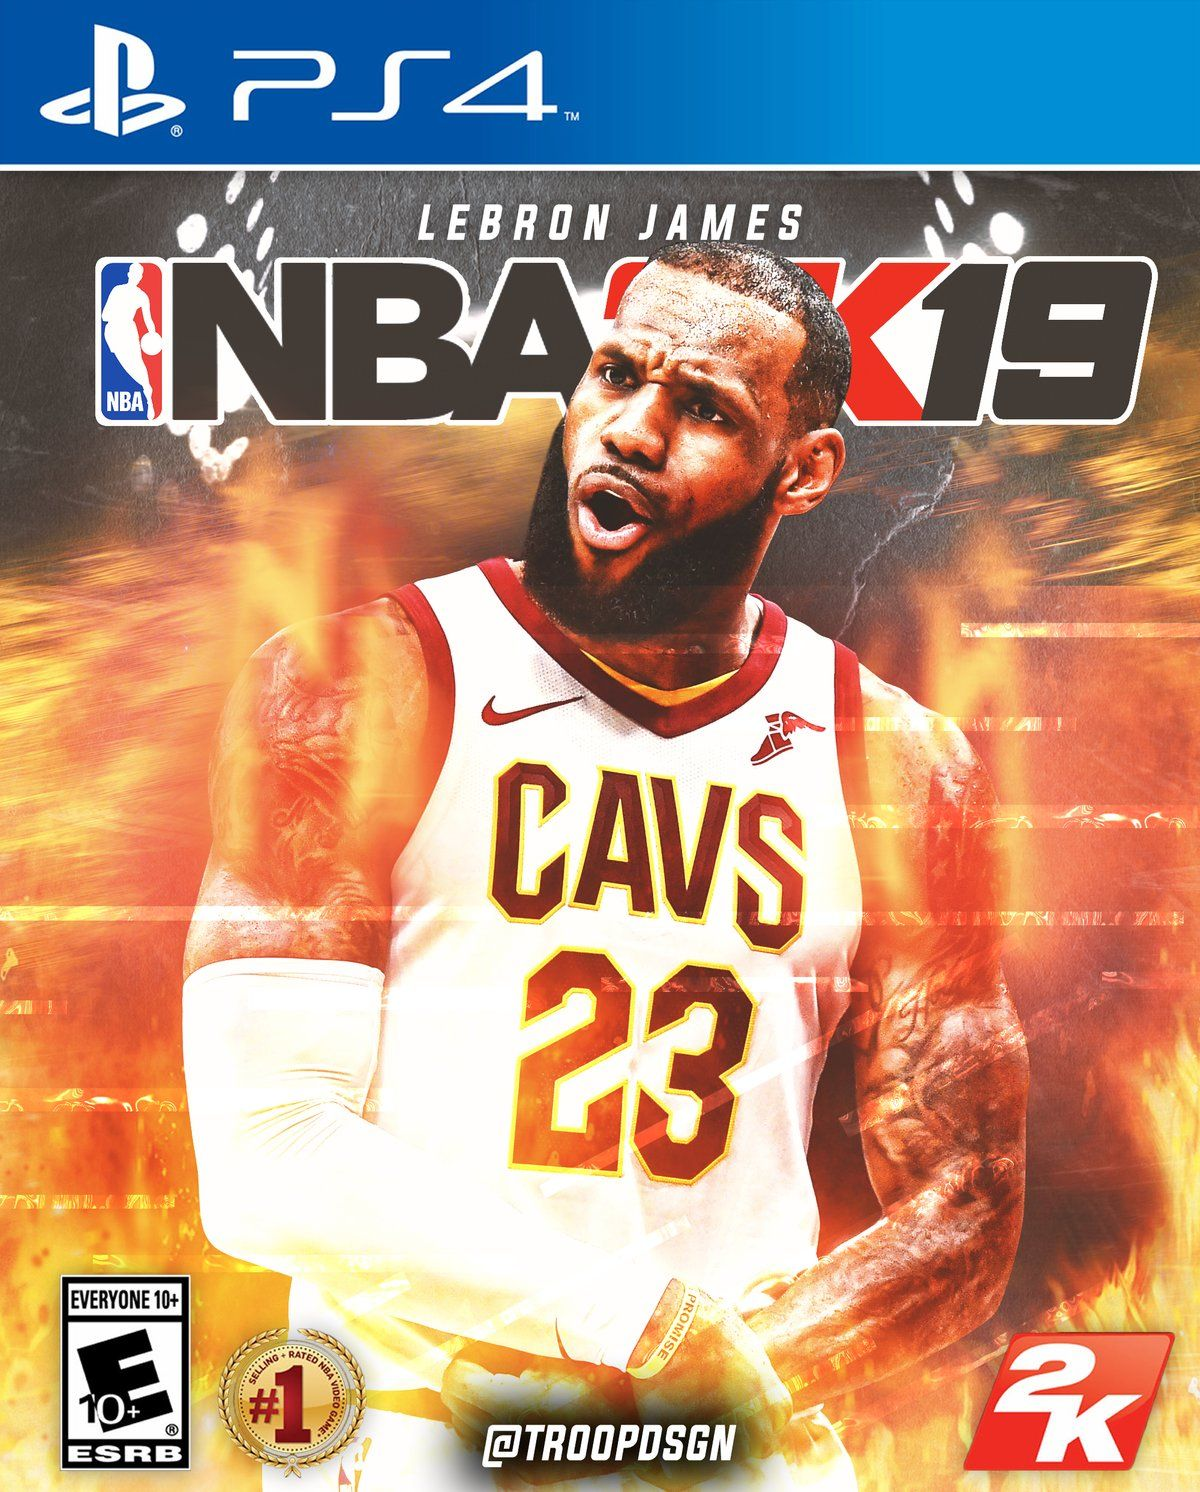 NBA 2K19 is an basketball simulation video game